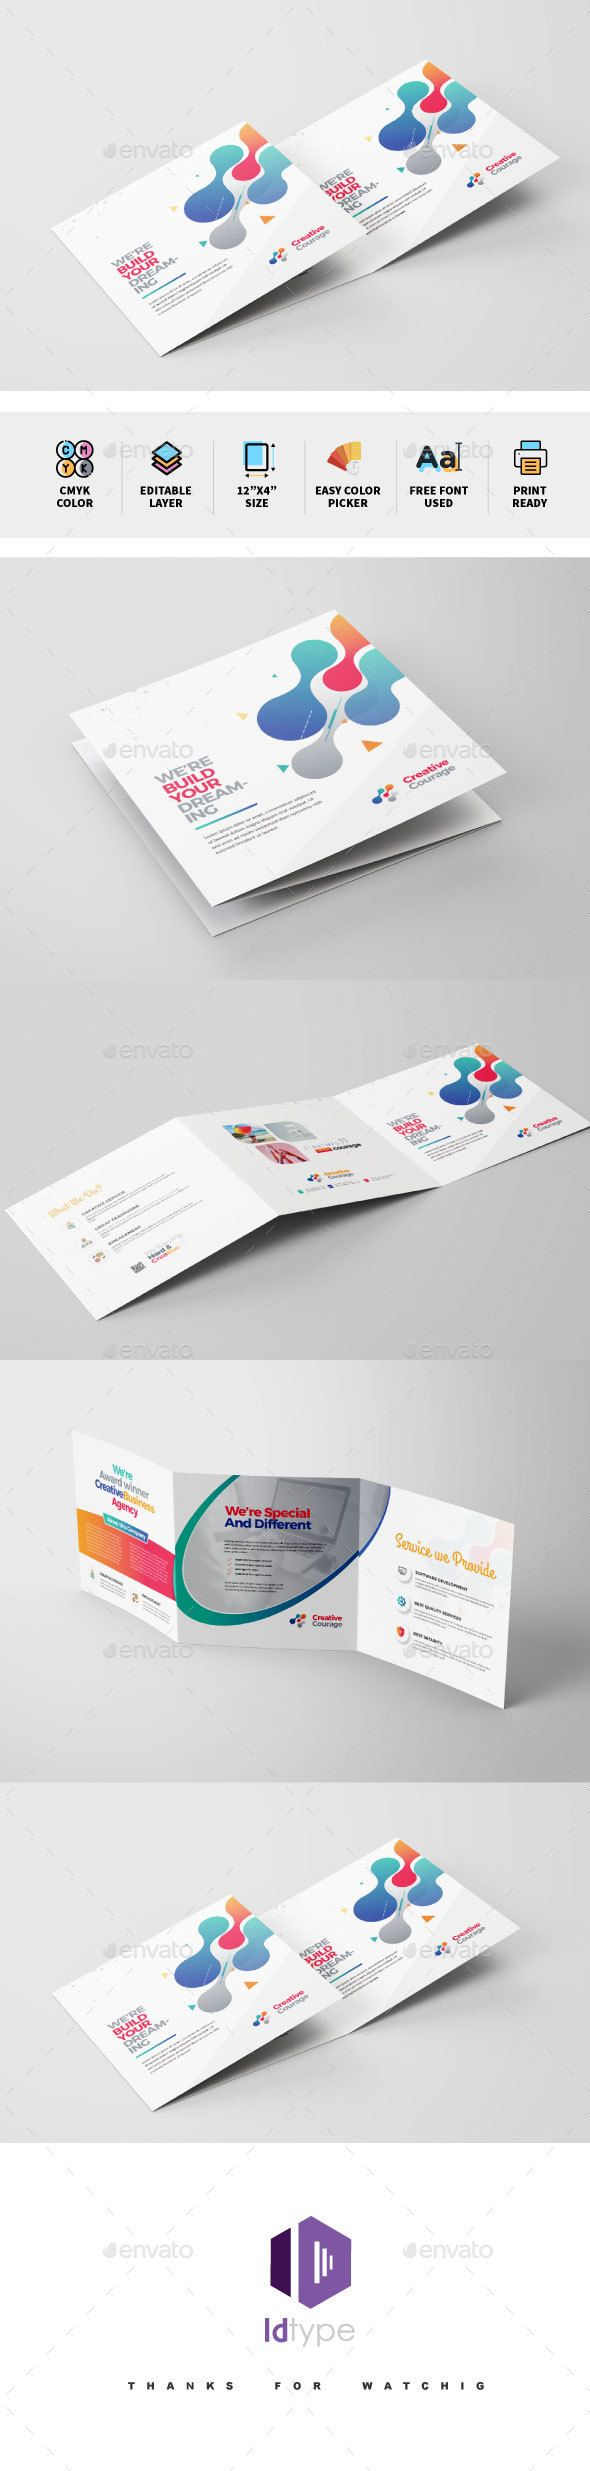 tri fold brochure template illustrator - Emayti